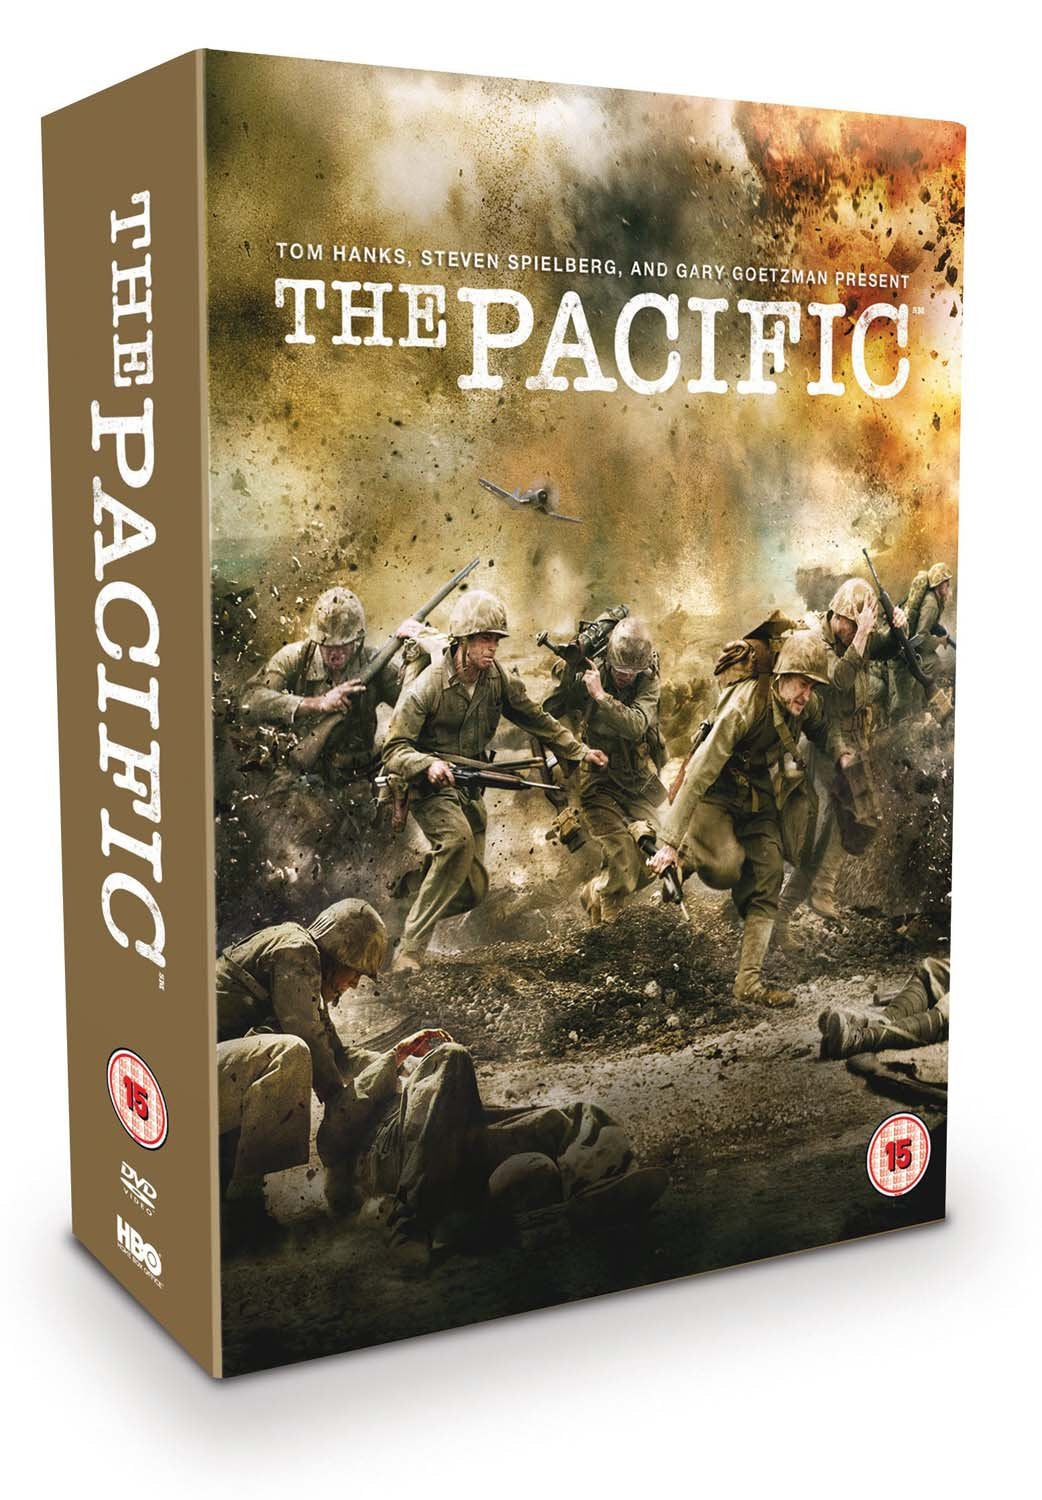 The Pacific - Steven Spielberg [DVD]